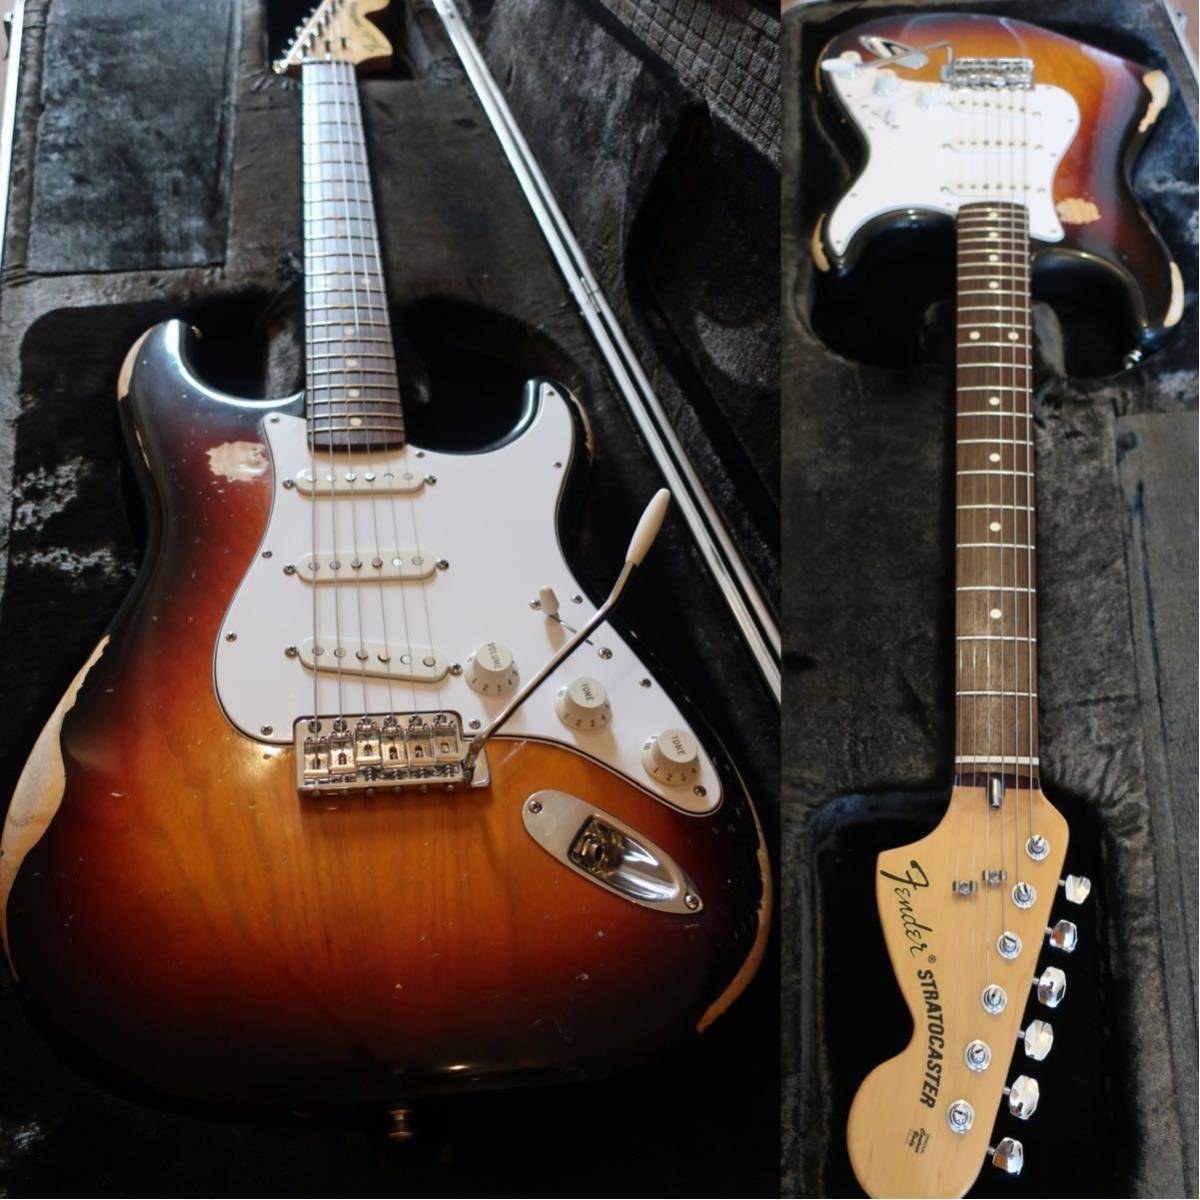 【RELIC】Fender Mexico Classic 70s Stratocaster 3CS/R 手巻きVooDooピックアップ +EMERSON CUSTOM ヴィンテージハードケース付き